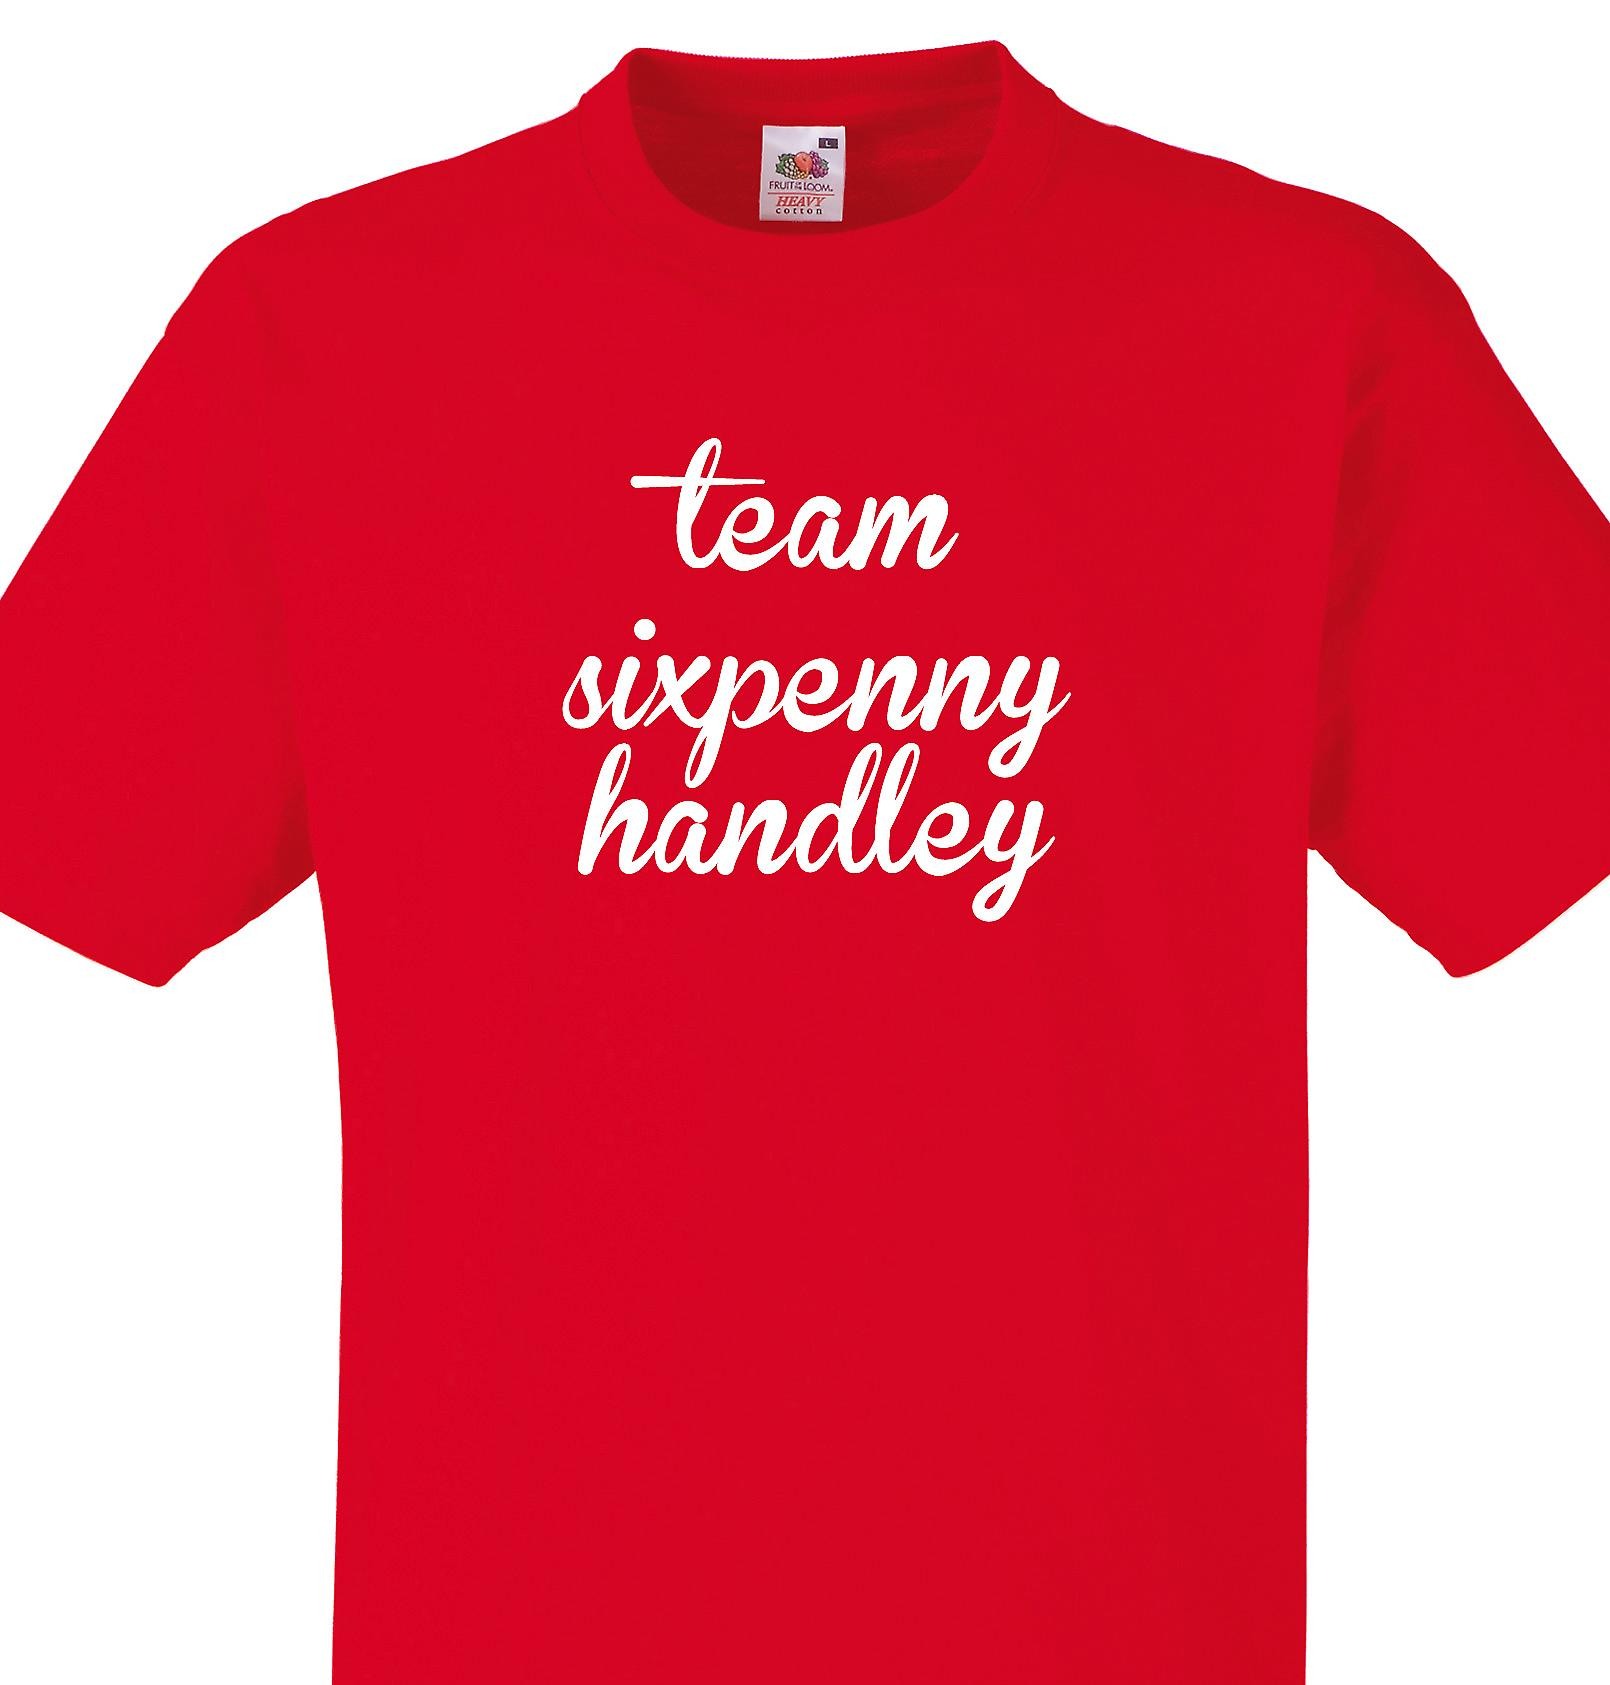 Team Sixpenny handley Red T shirt